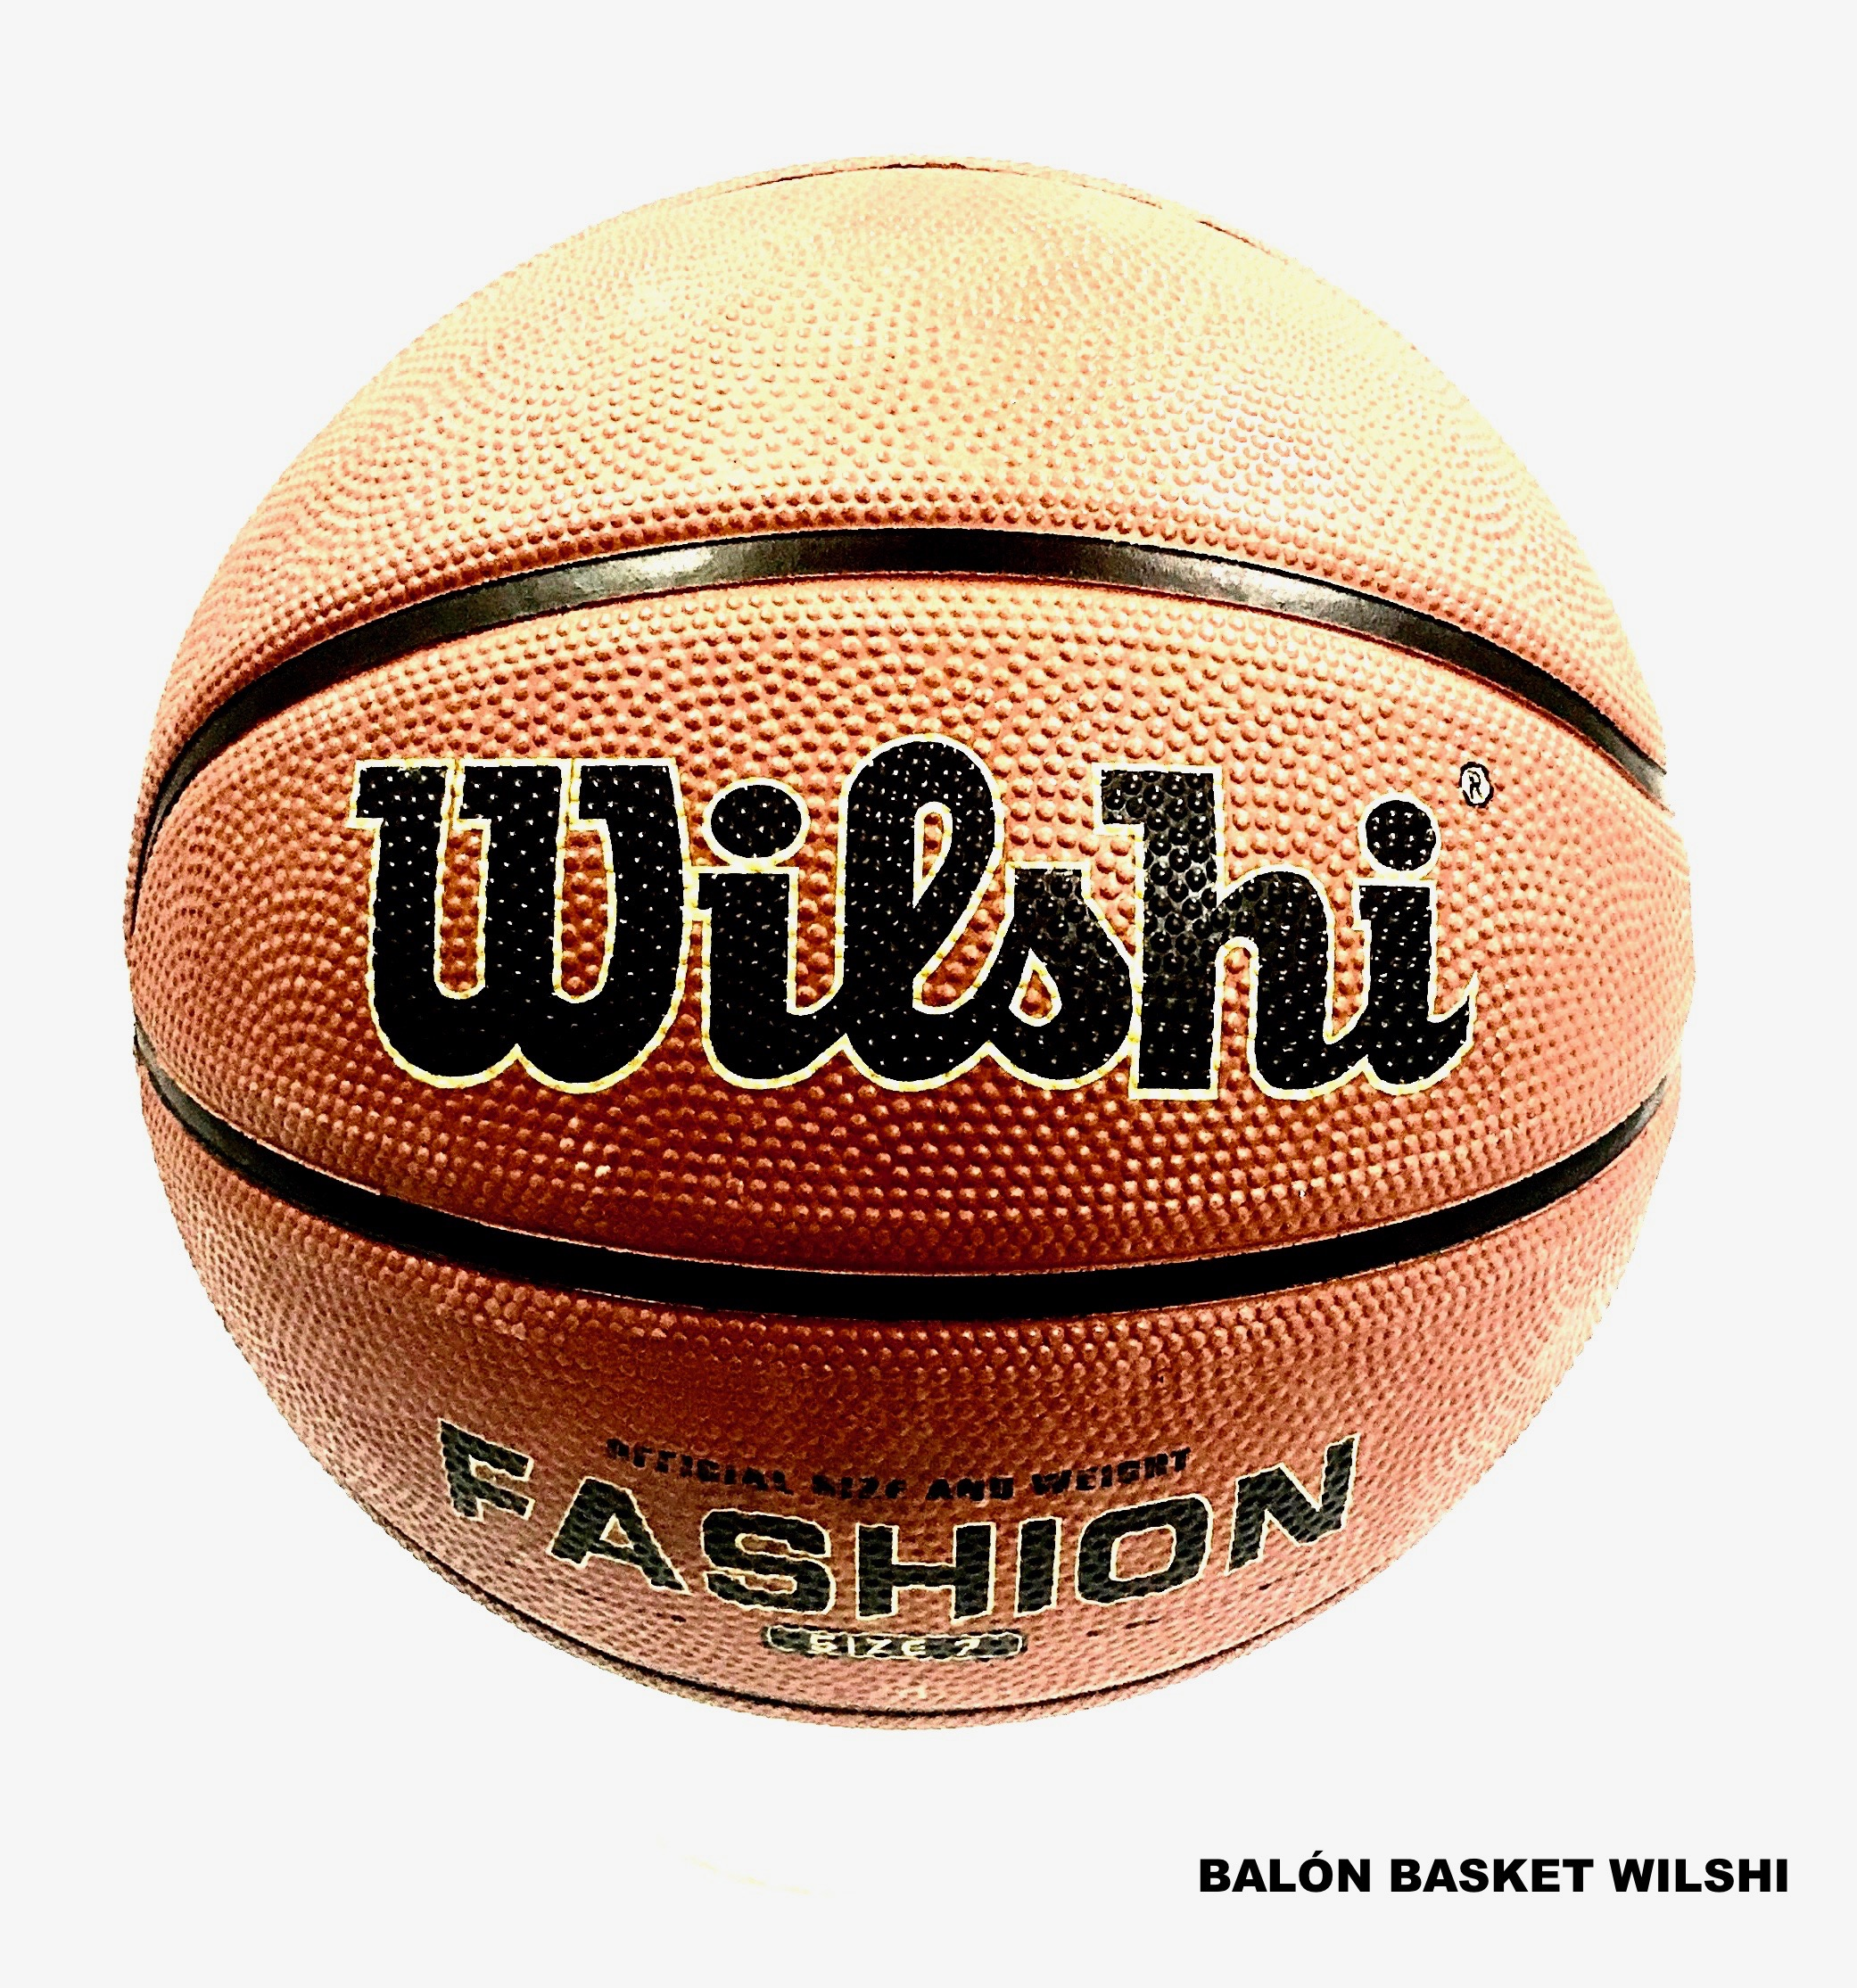 BALON BASKET WILSHI